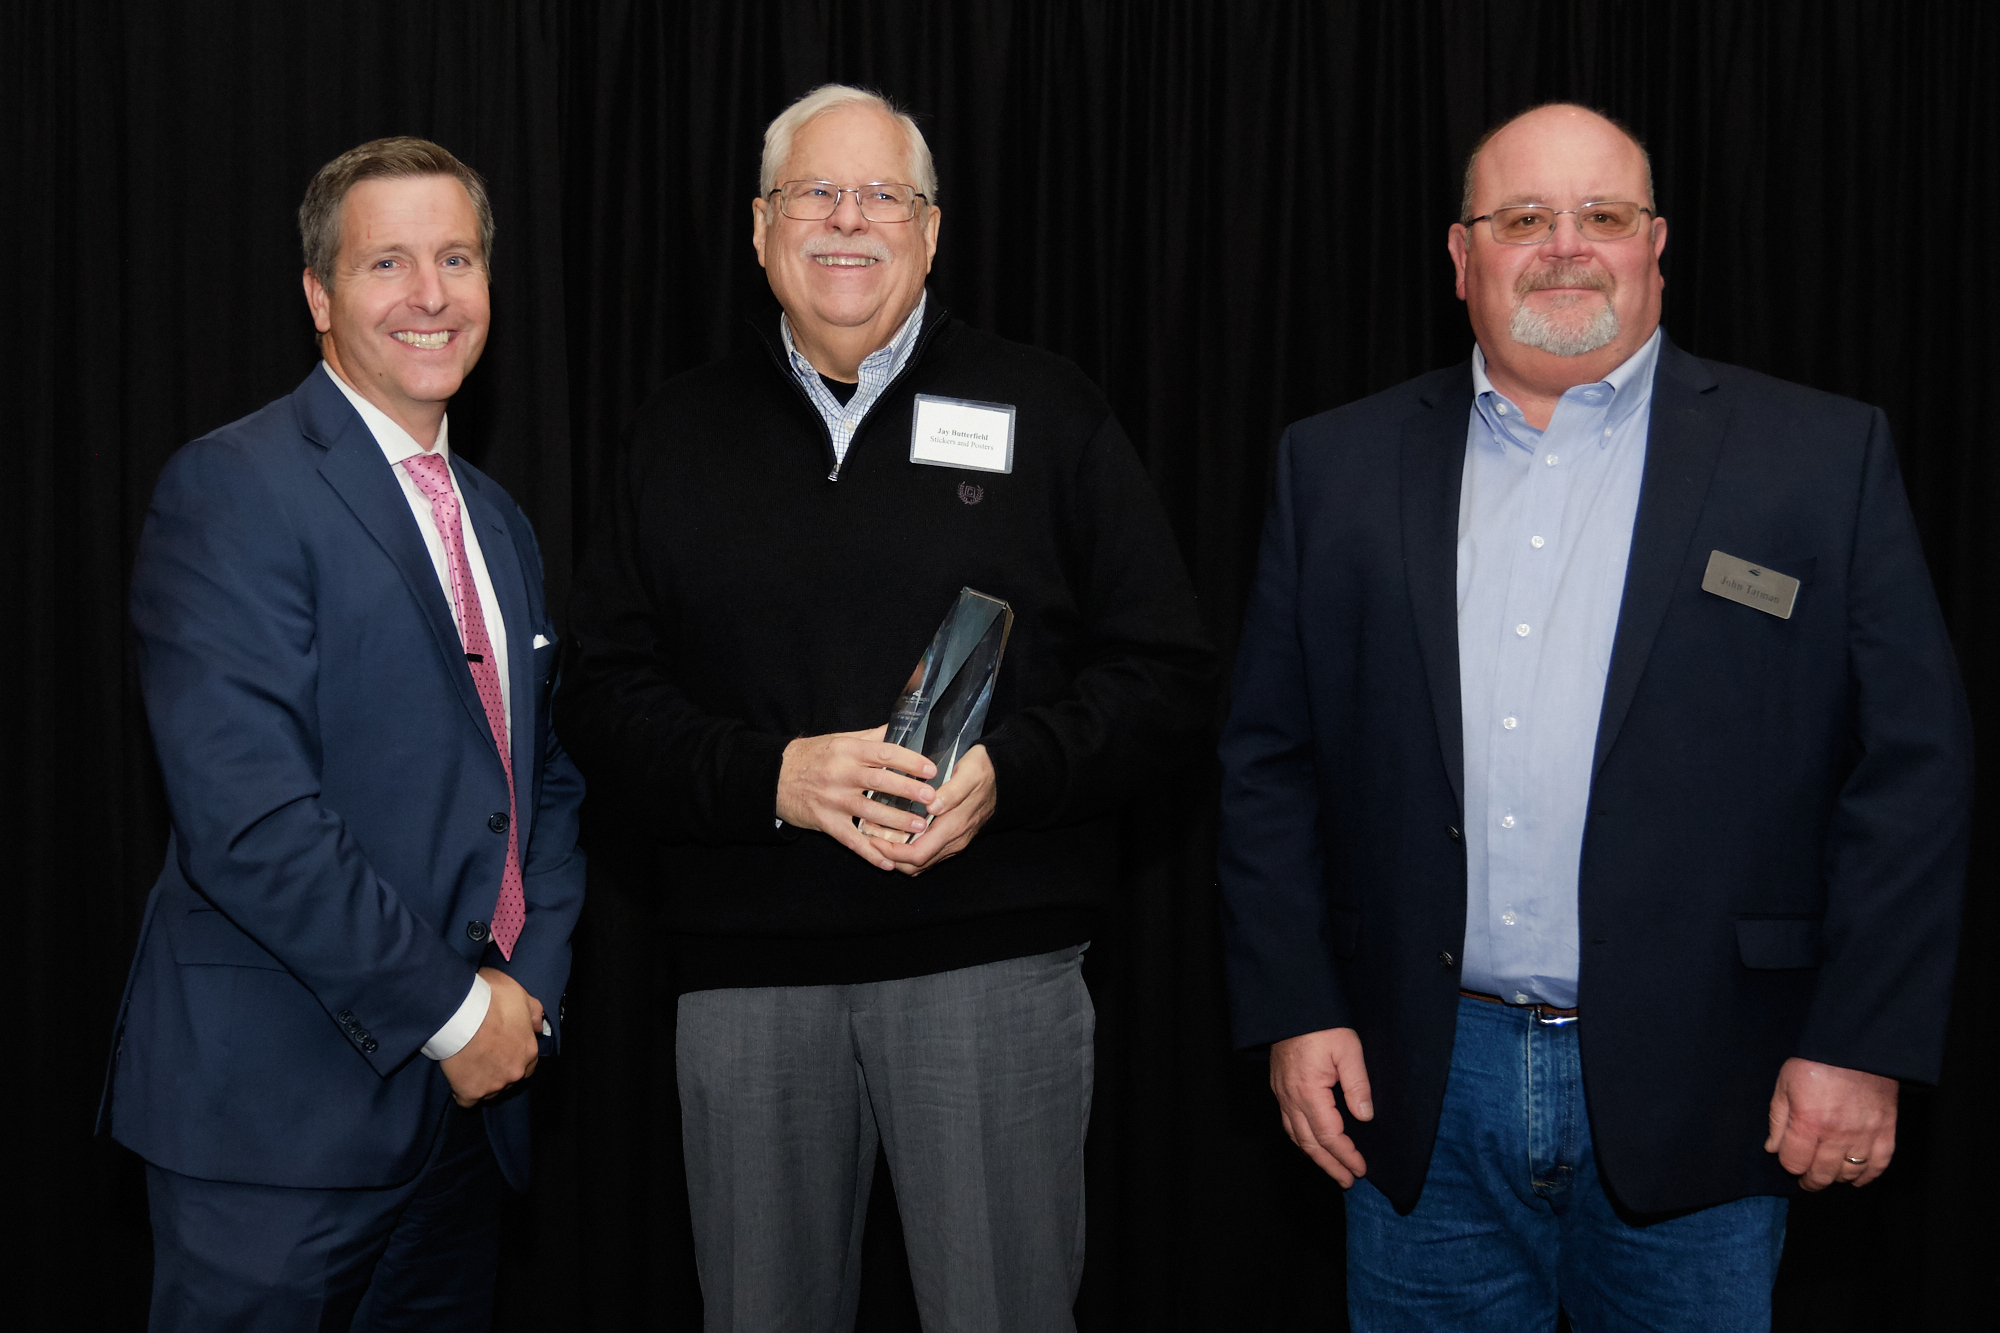 L to R: Corridor CEO Kiley Miller, 2019 Entrepreneur of the Year Jay Butterfield (Stickers and Posters), Corridor Board Chair John Tatman